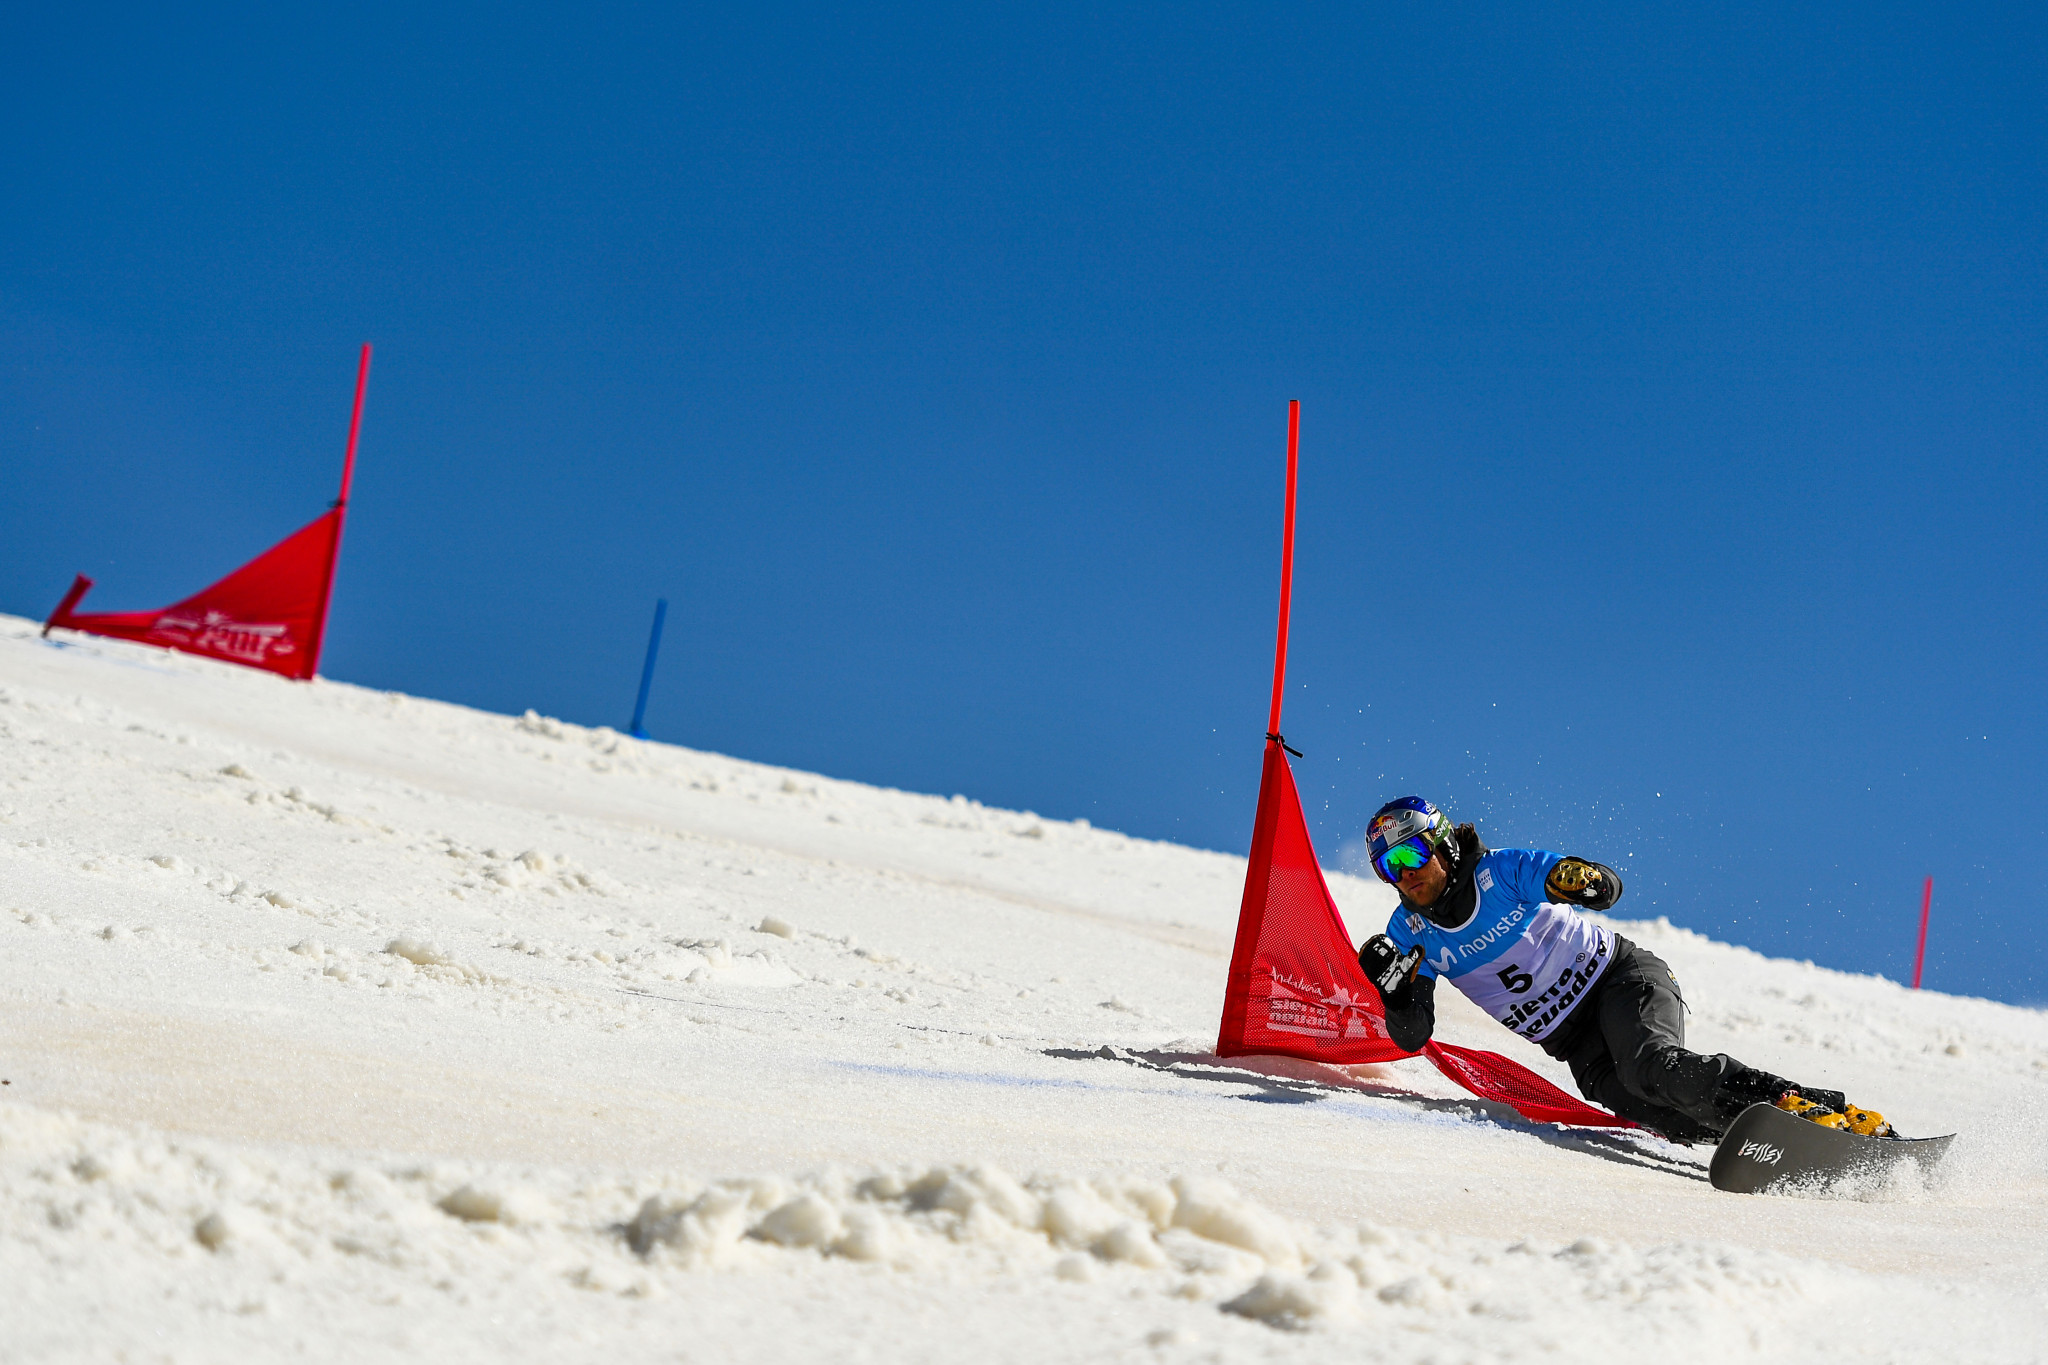 Bad Gastein to host first parallel slalom event of Snowboard World Cup season